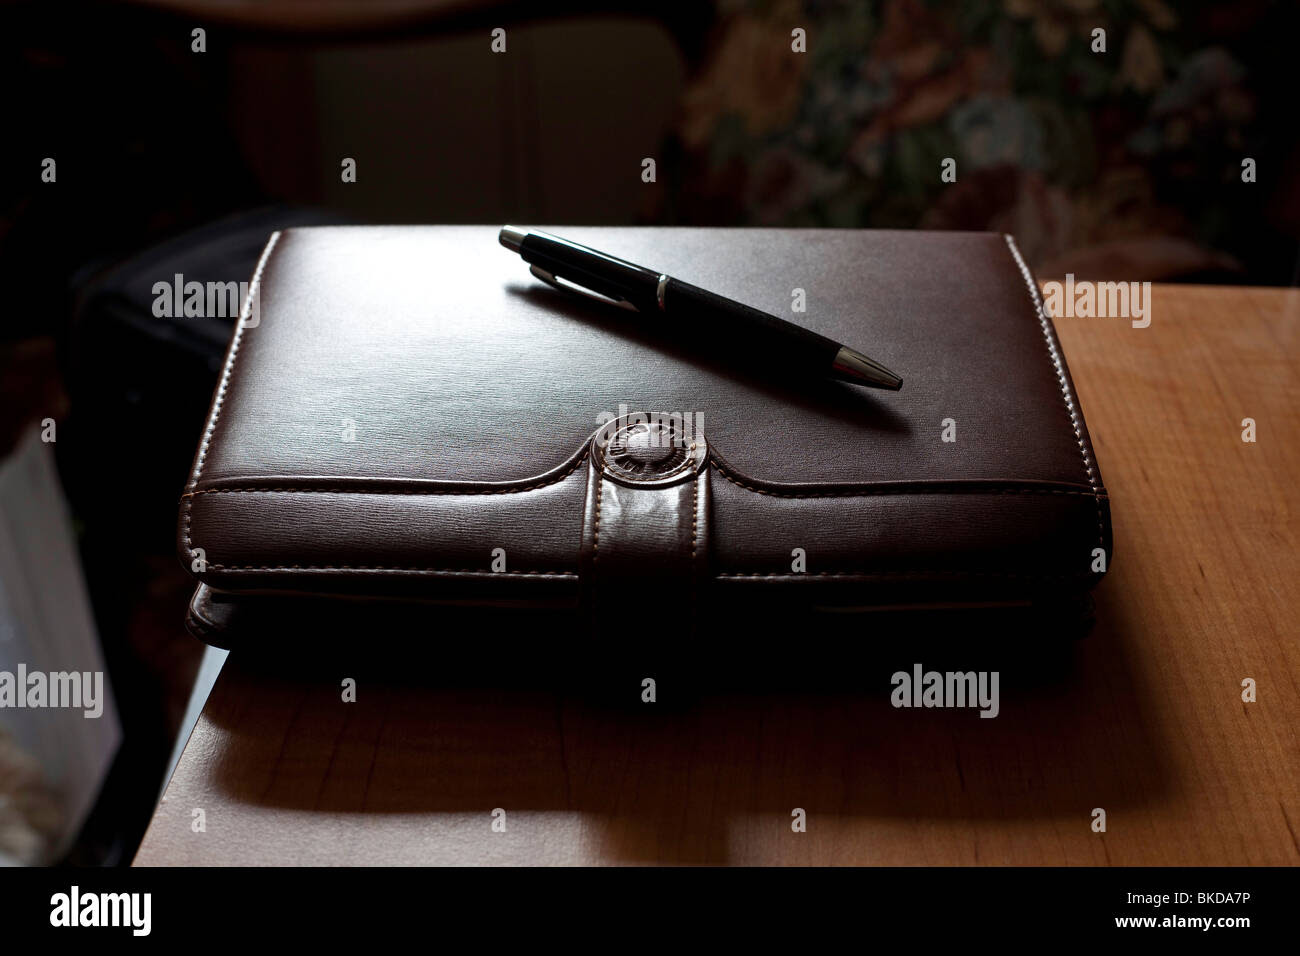 A Diary Address Book Day Planner Leather Bound With A Snap Closure ...